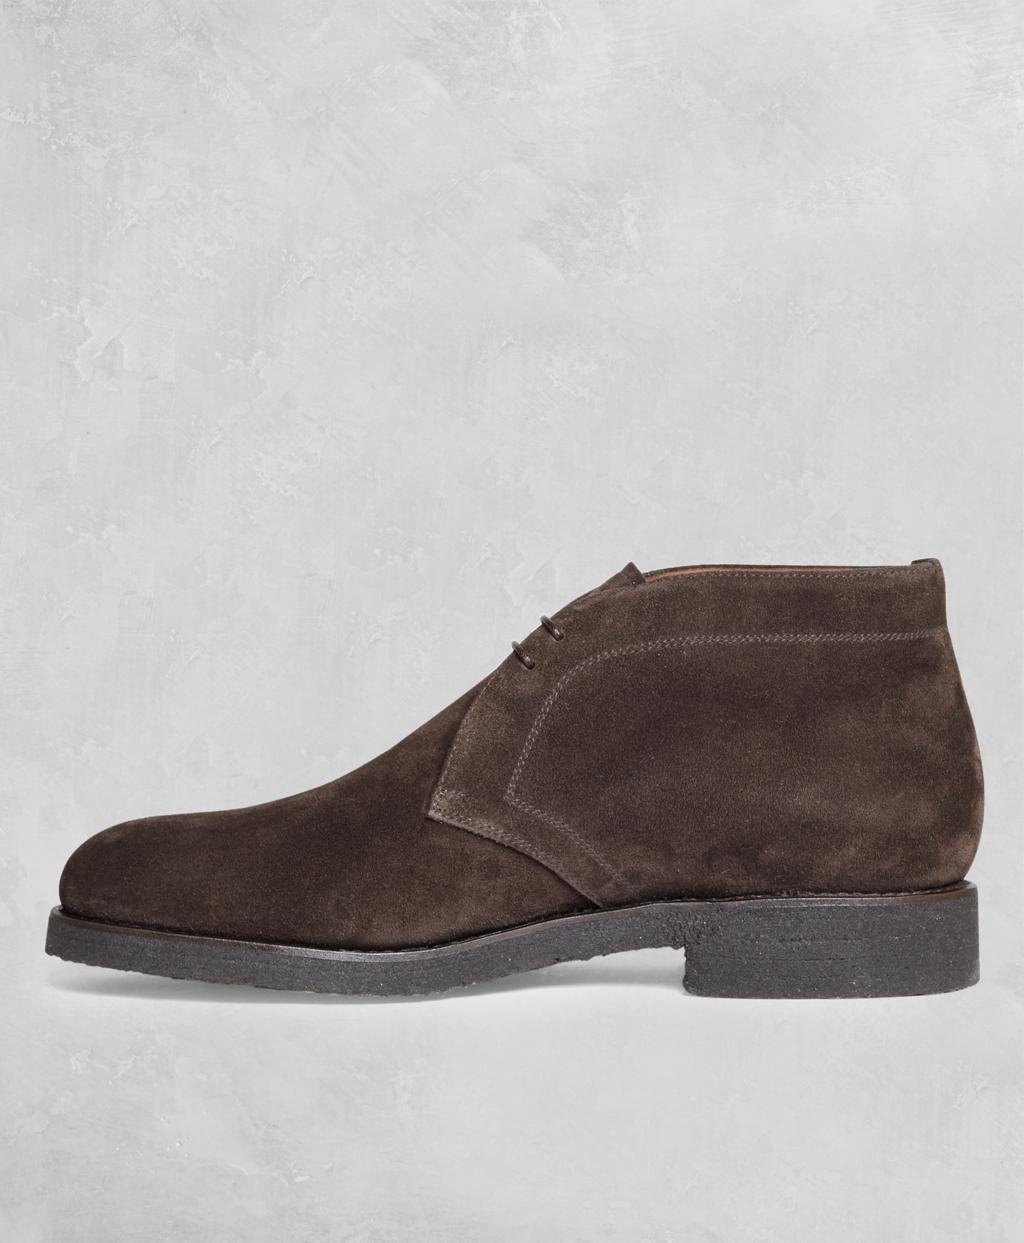 016f3e51f49 Lyst - Brooks Brothers Golden Fleece Suede Chukka Boots in Brown for Men